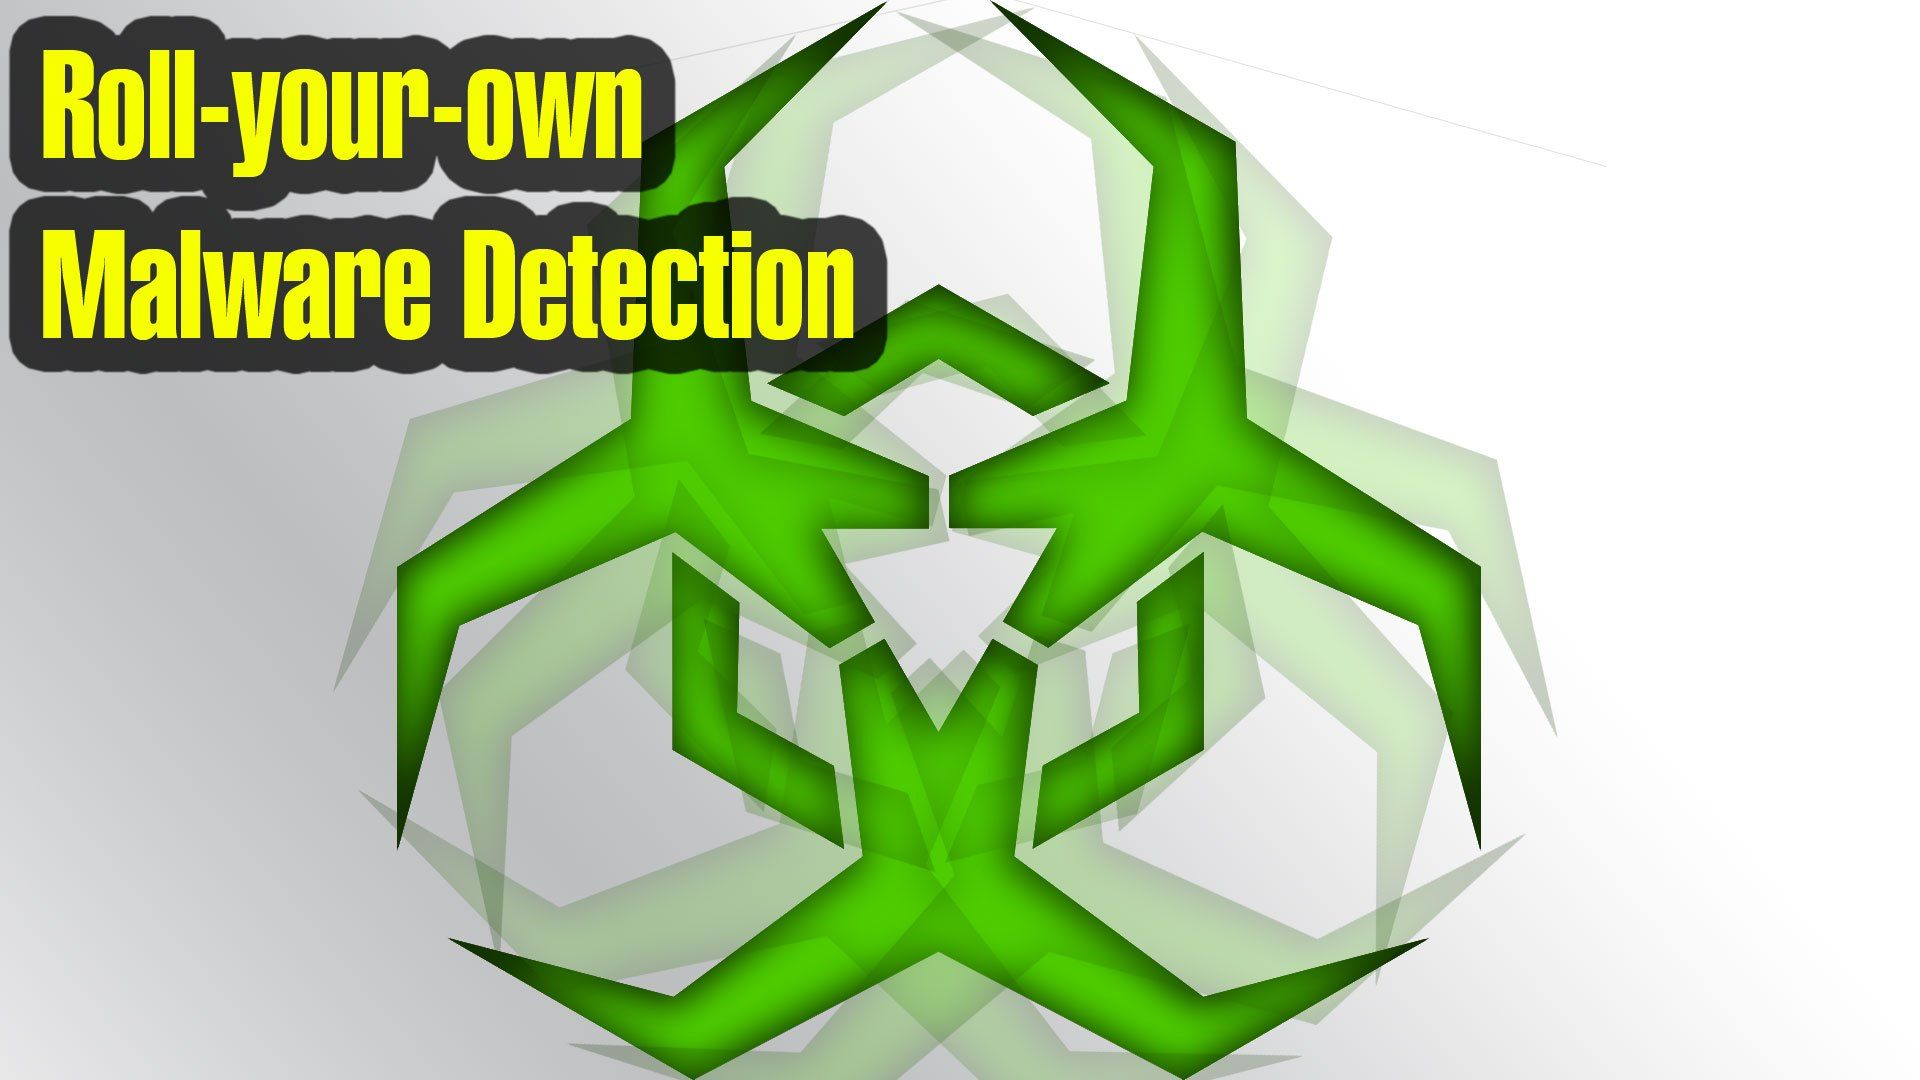 OS X: Roll-your-own Malware Detection